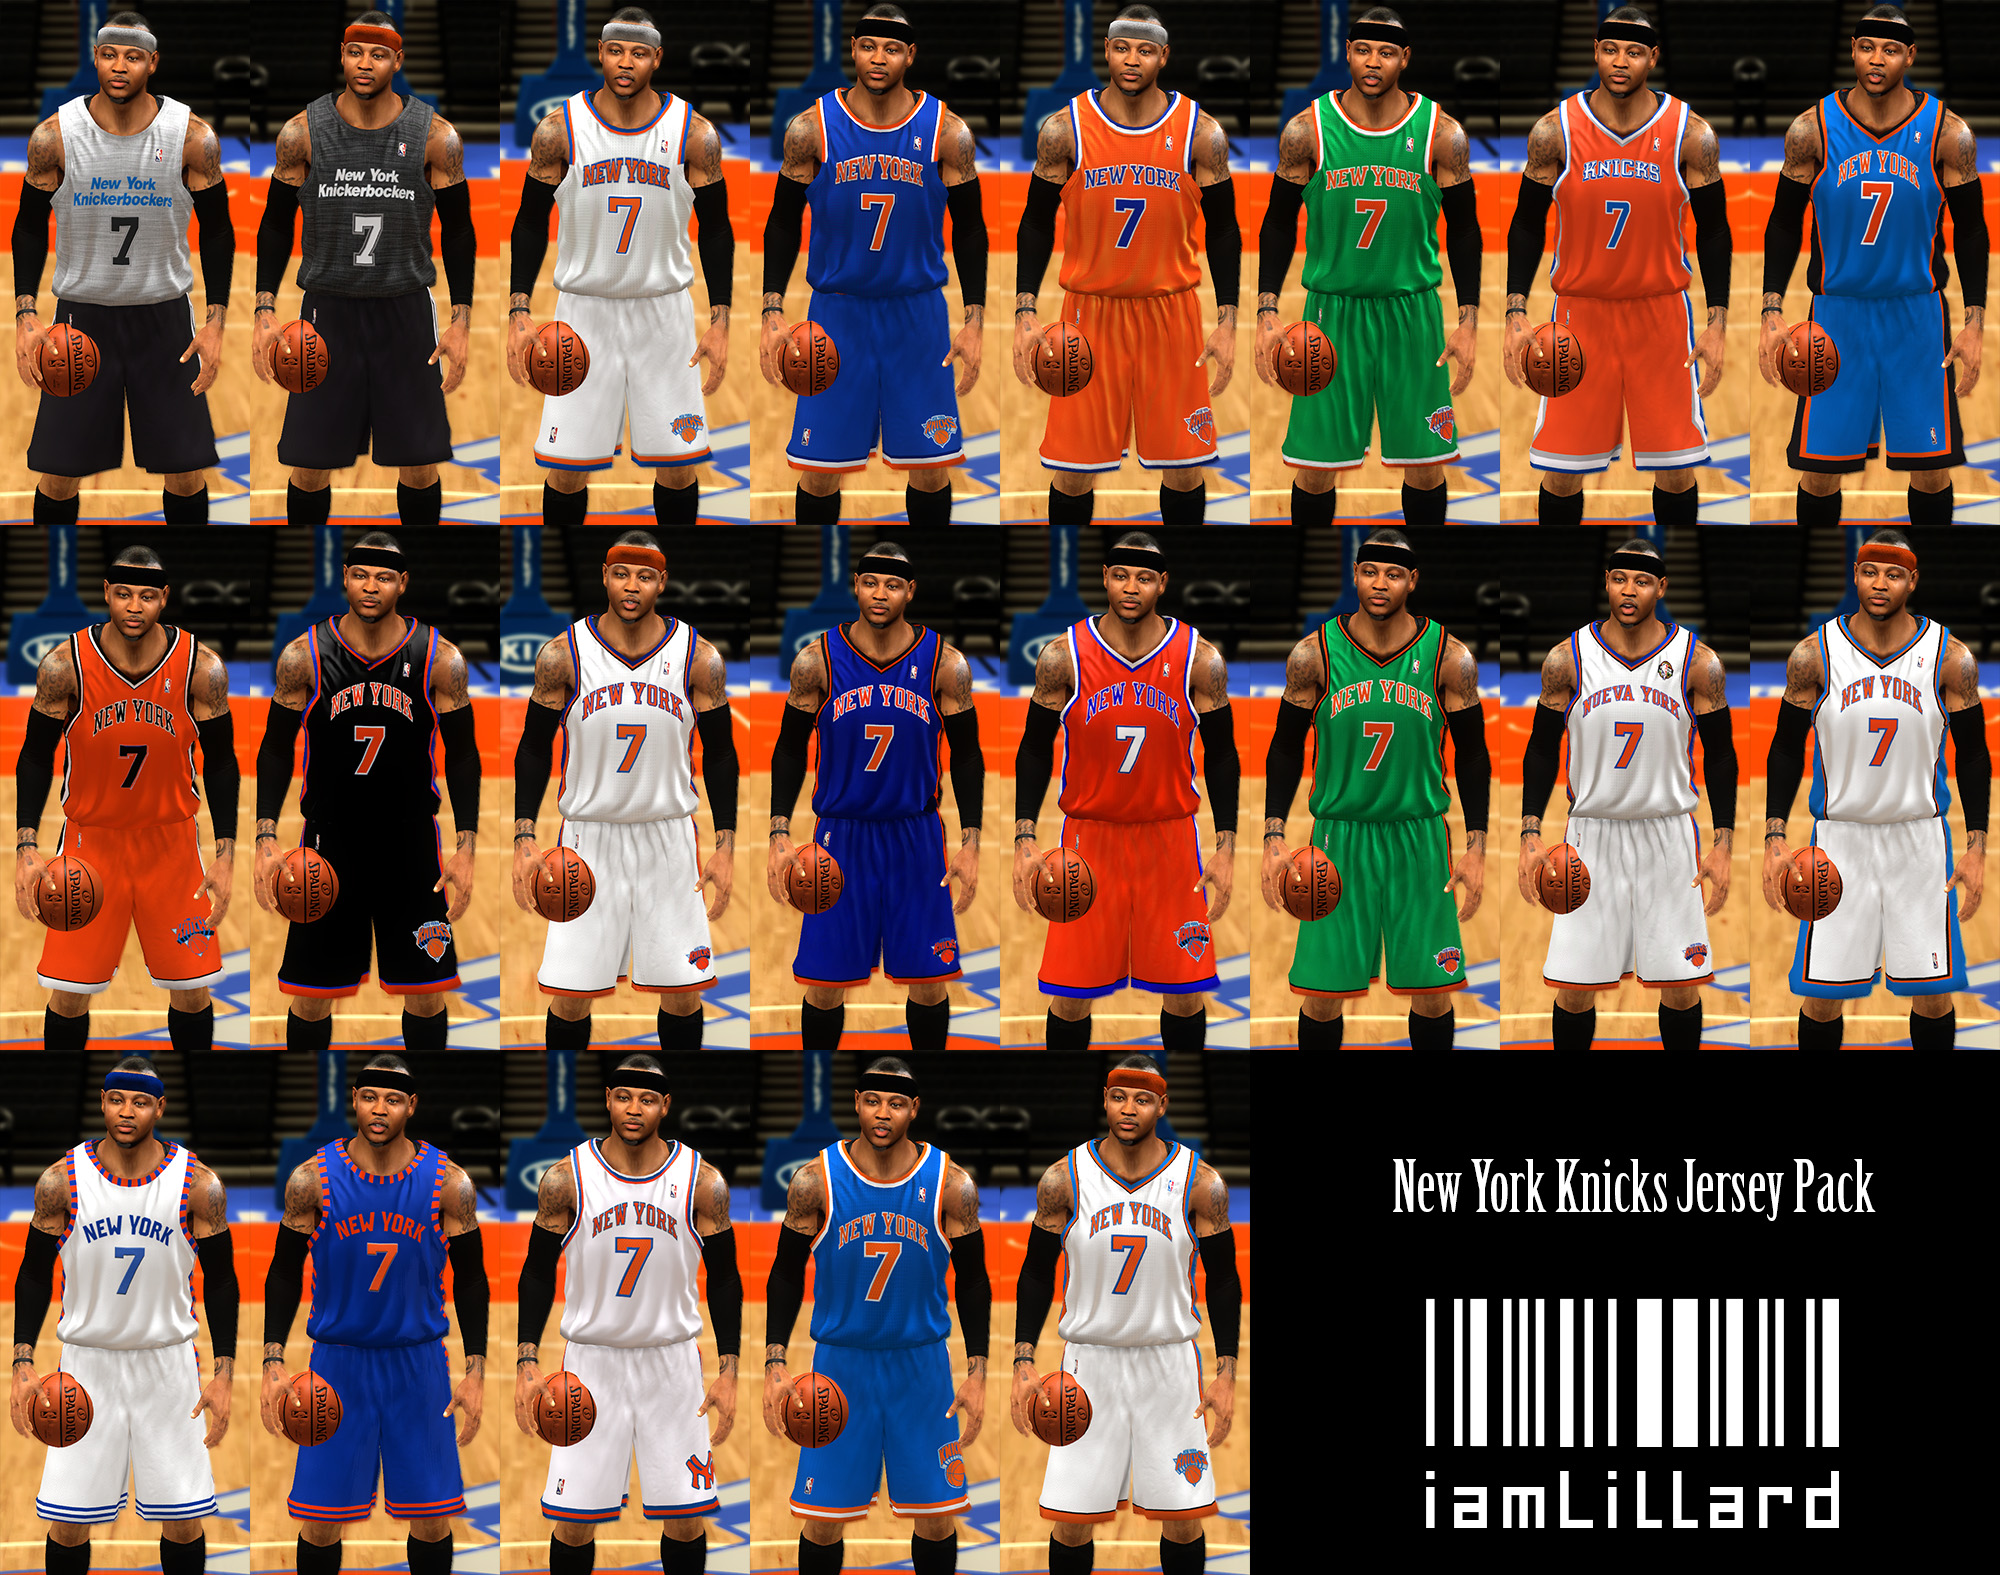 UJP New York Knicks Jersey